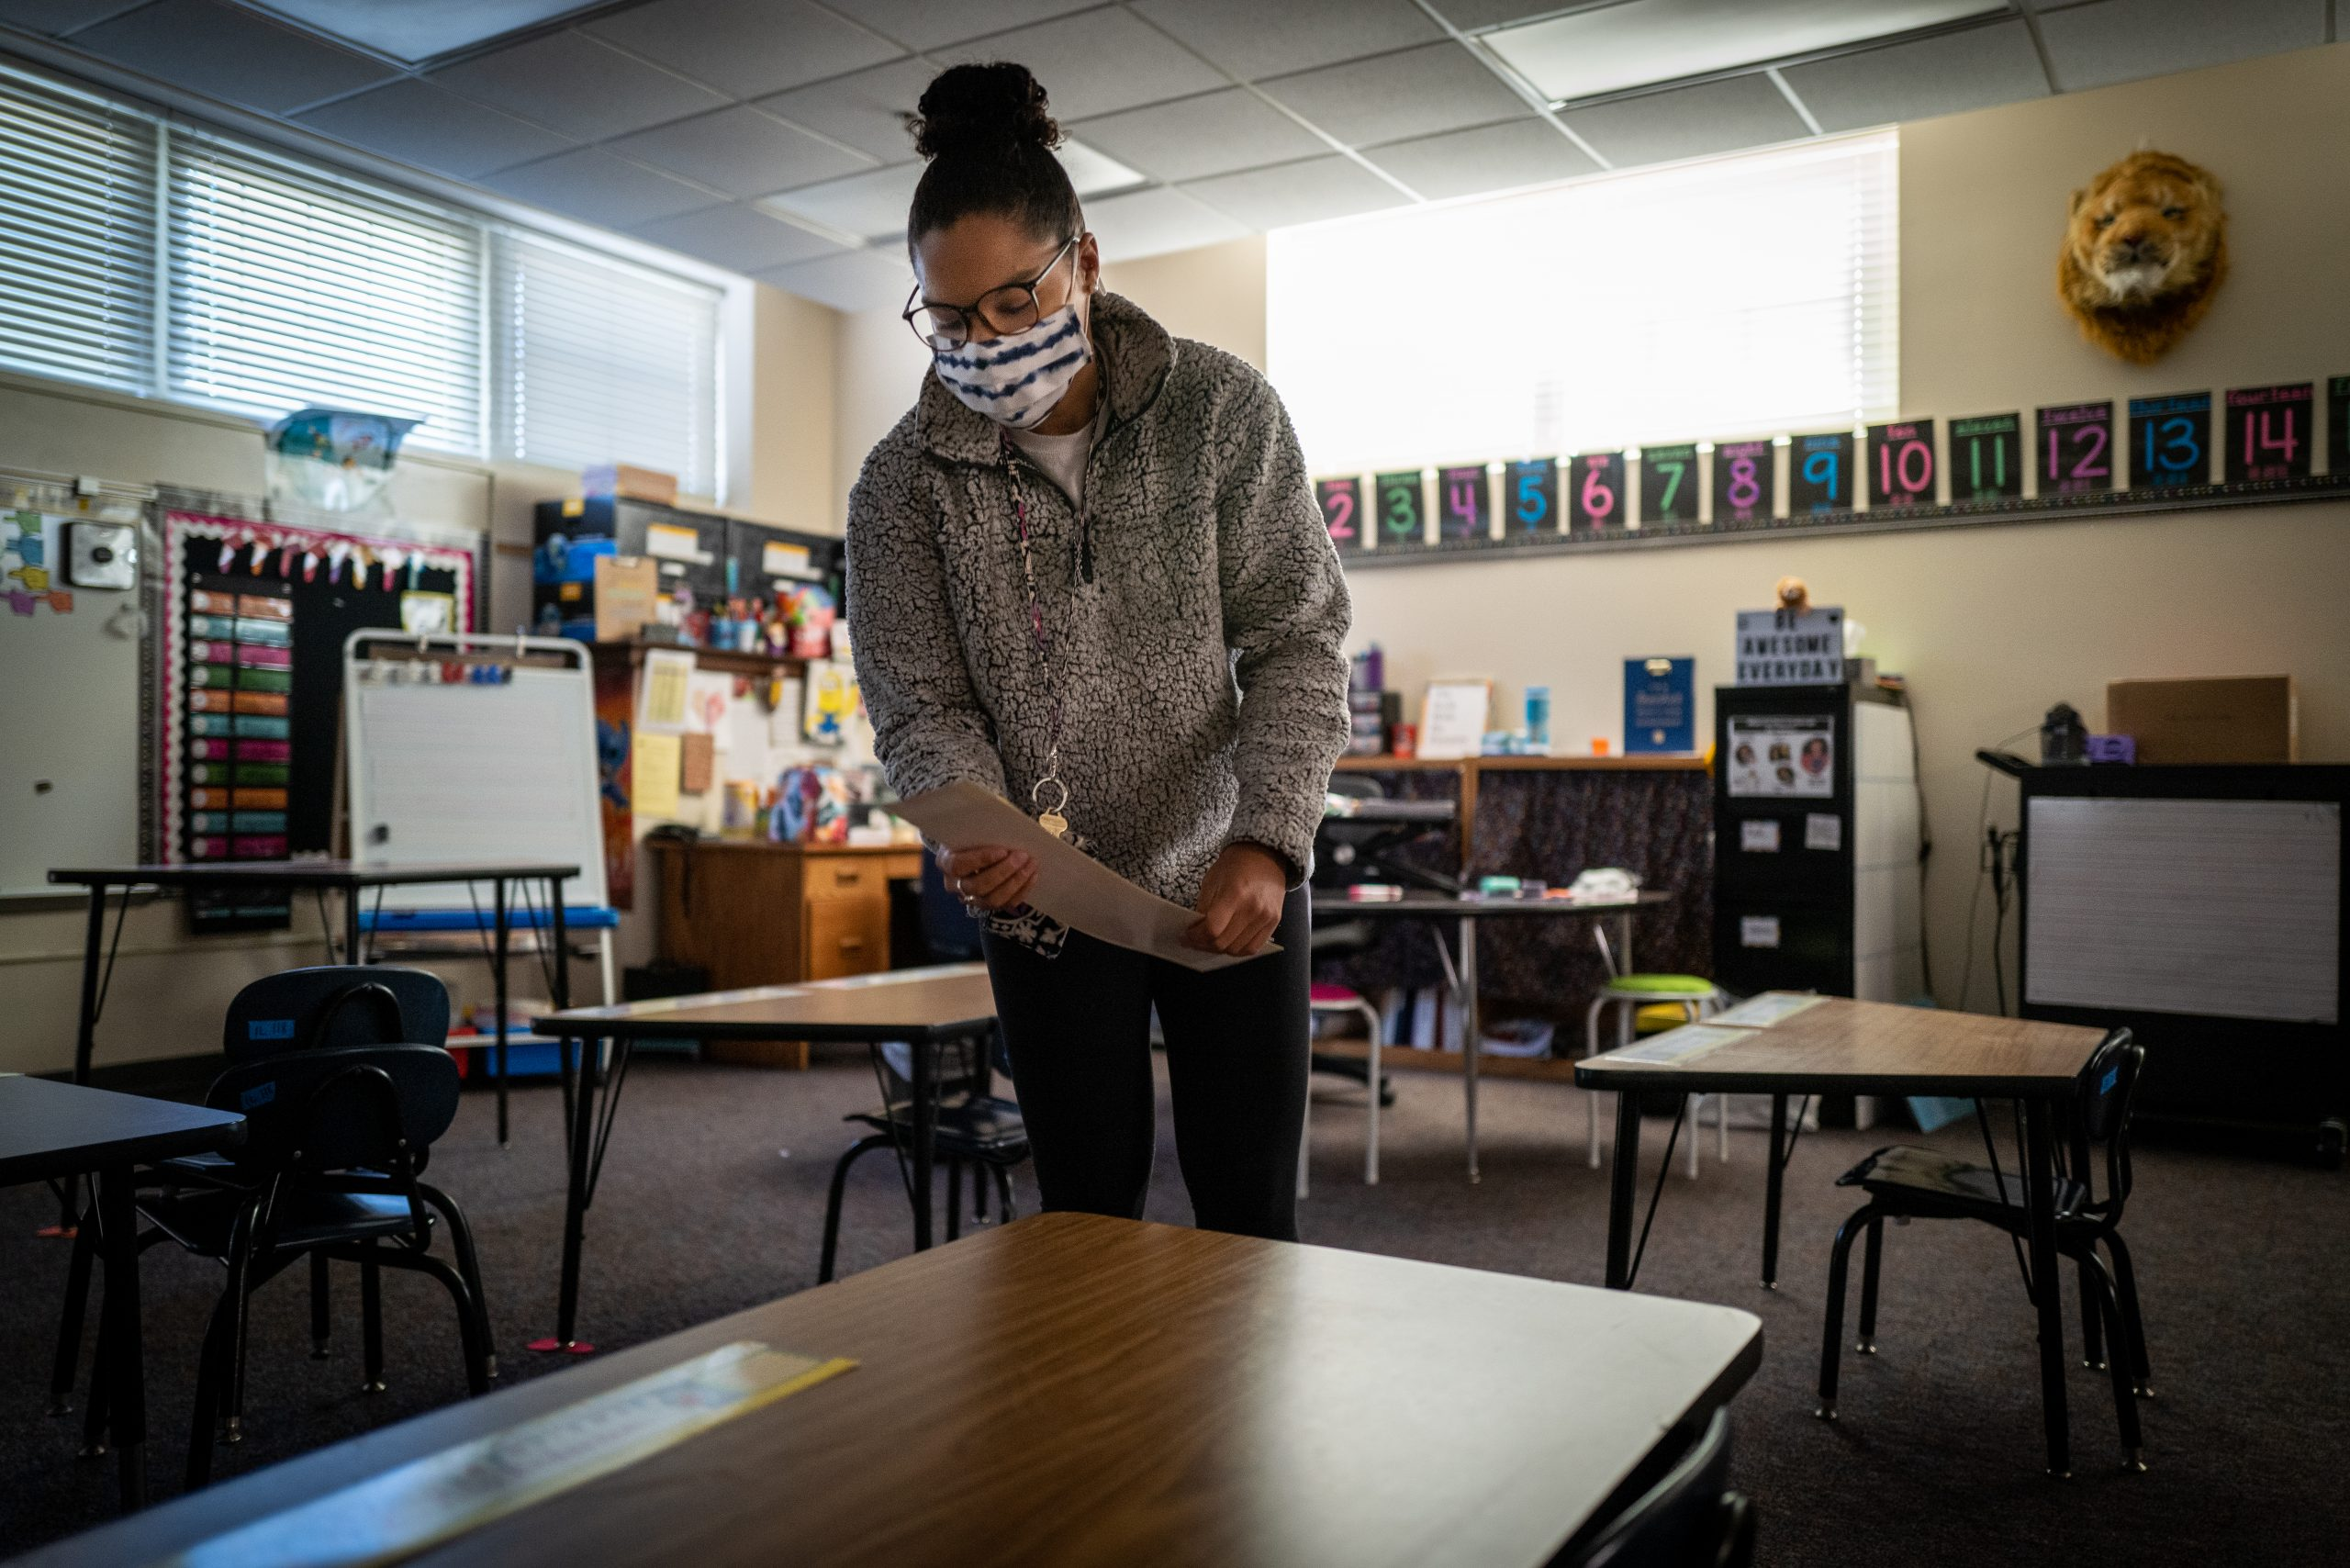 """In Des Moines, it was been 220 days since students were in a """"normal"""" classroom. That starts to change, a little bit, when the school district begins a hybrid learning model at elementary schools with students who choose to do so attending 2-3 days per week. I dropped by a few schools today as teachers and staff were making final preparations."""